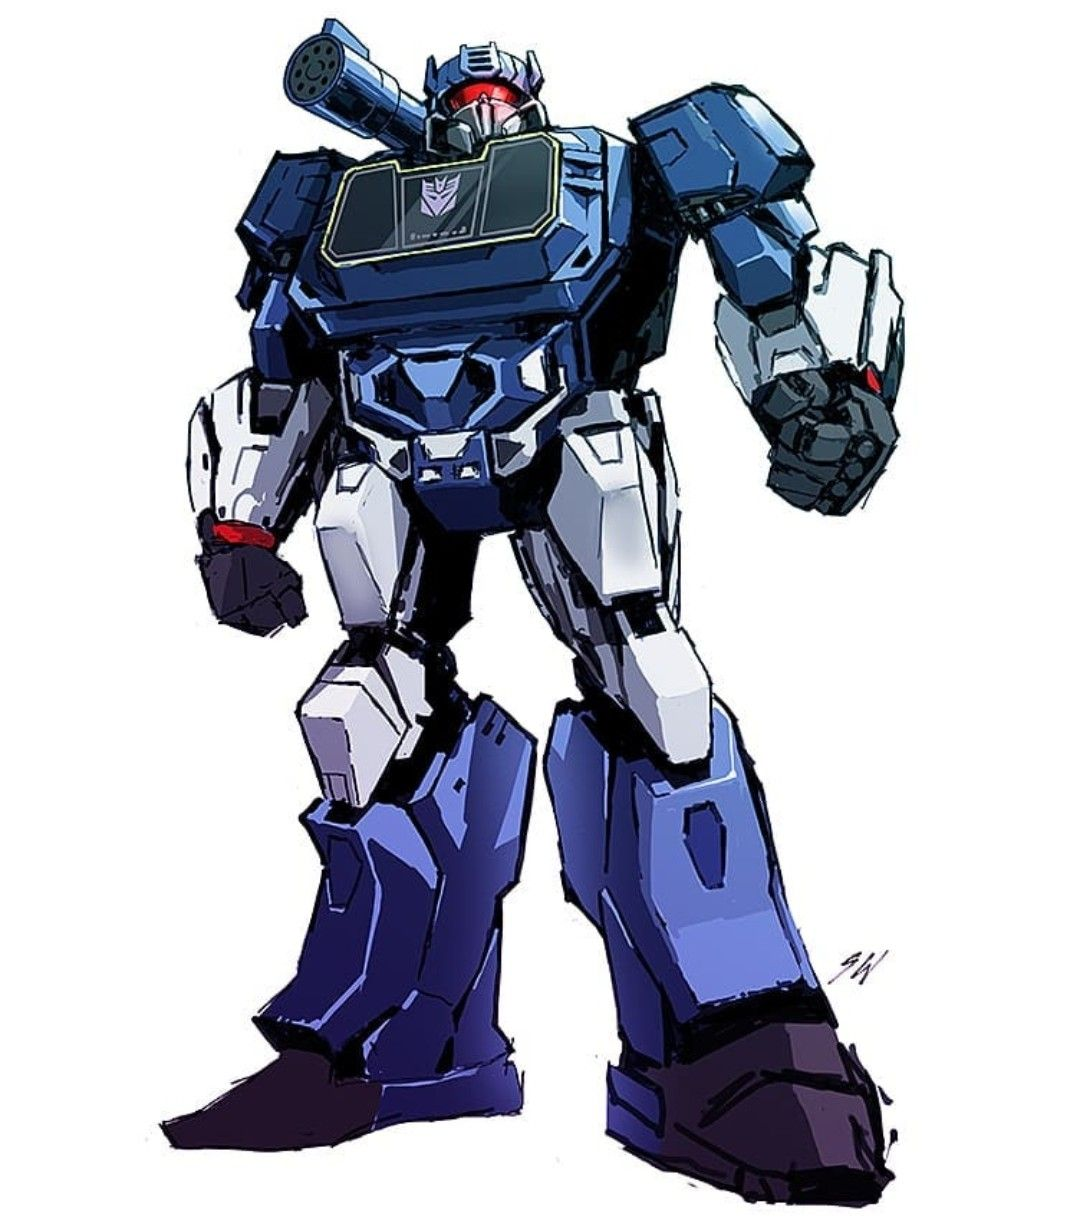 Soundwave Transformers Artwork Transformers Soundwave Transformers Decepticons